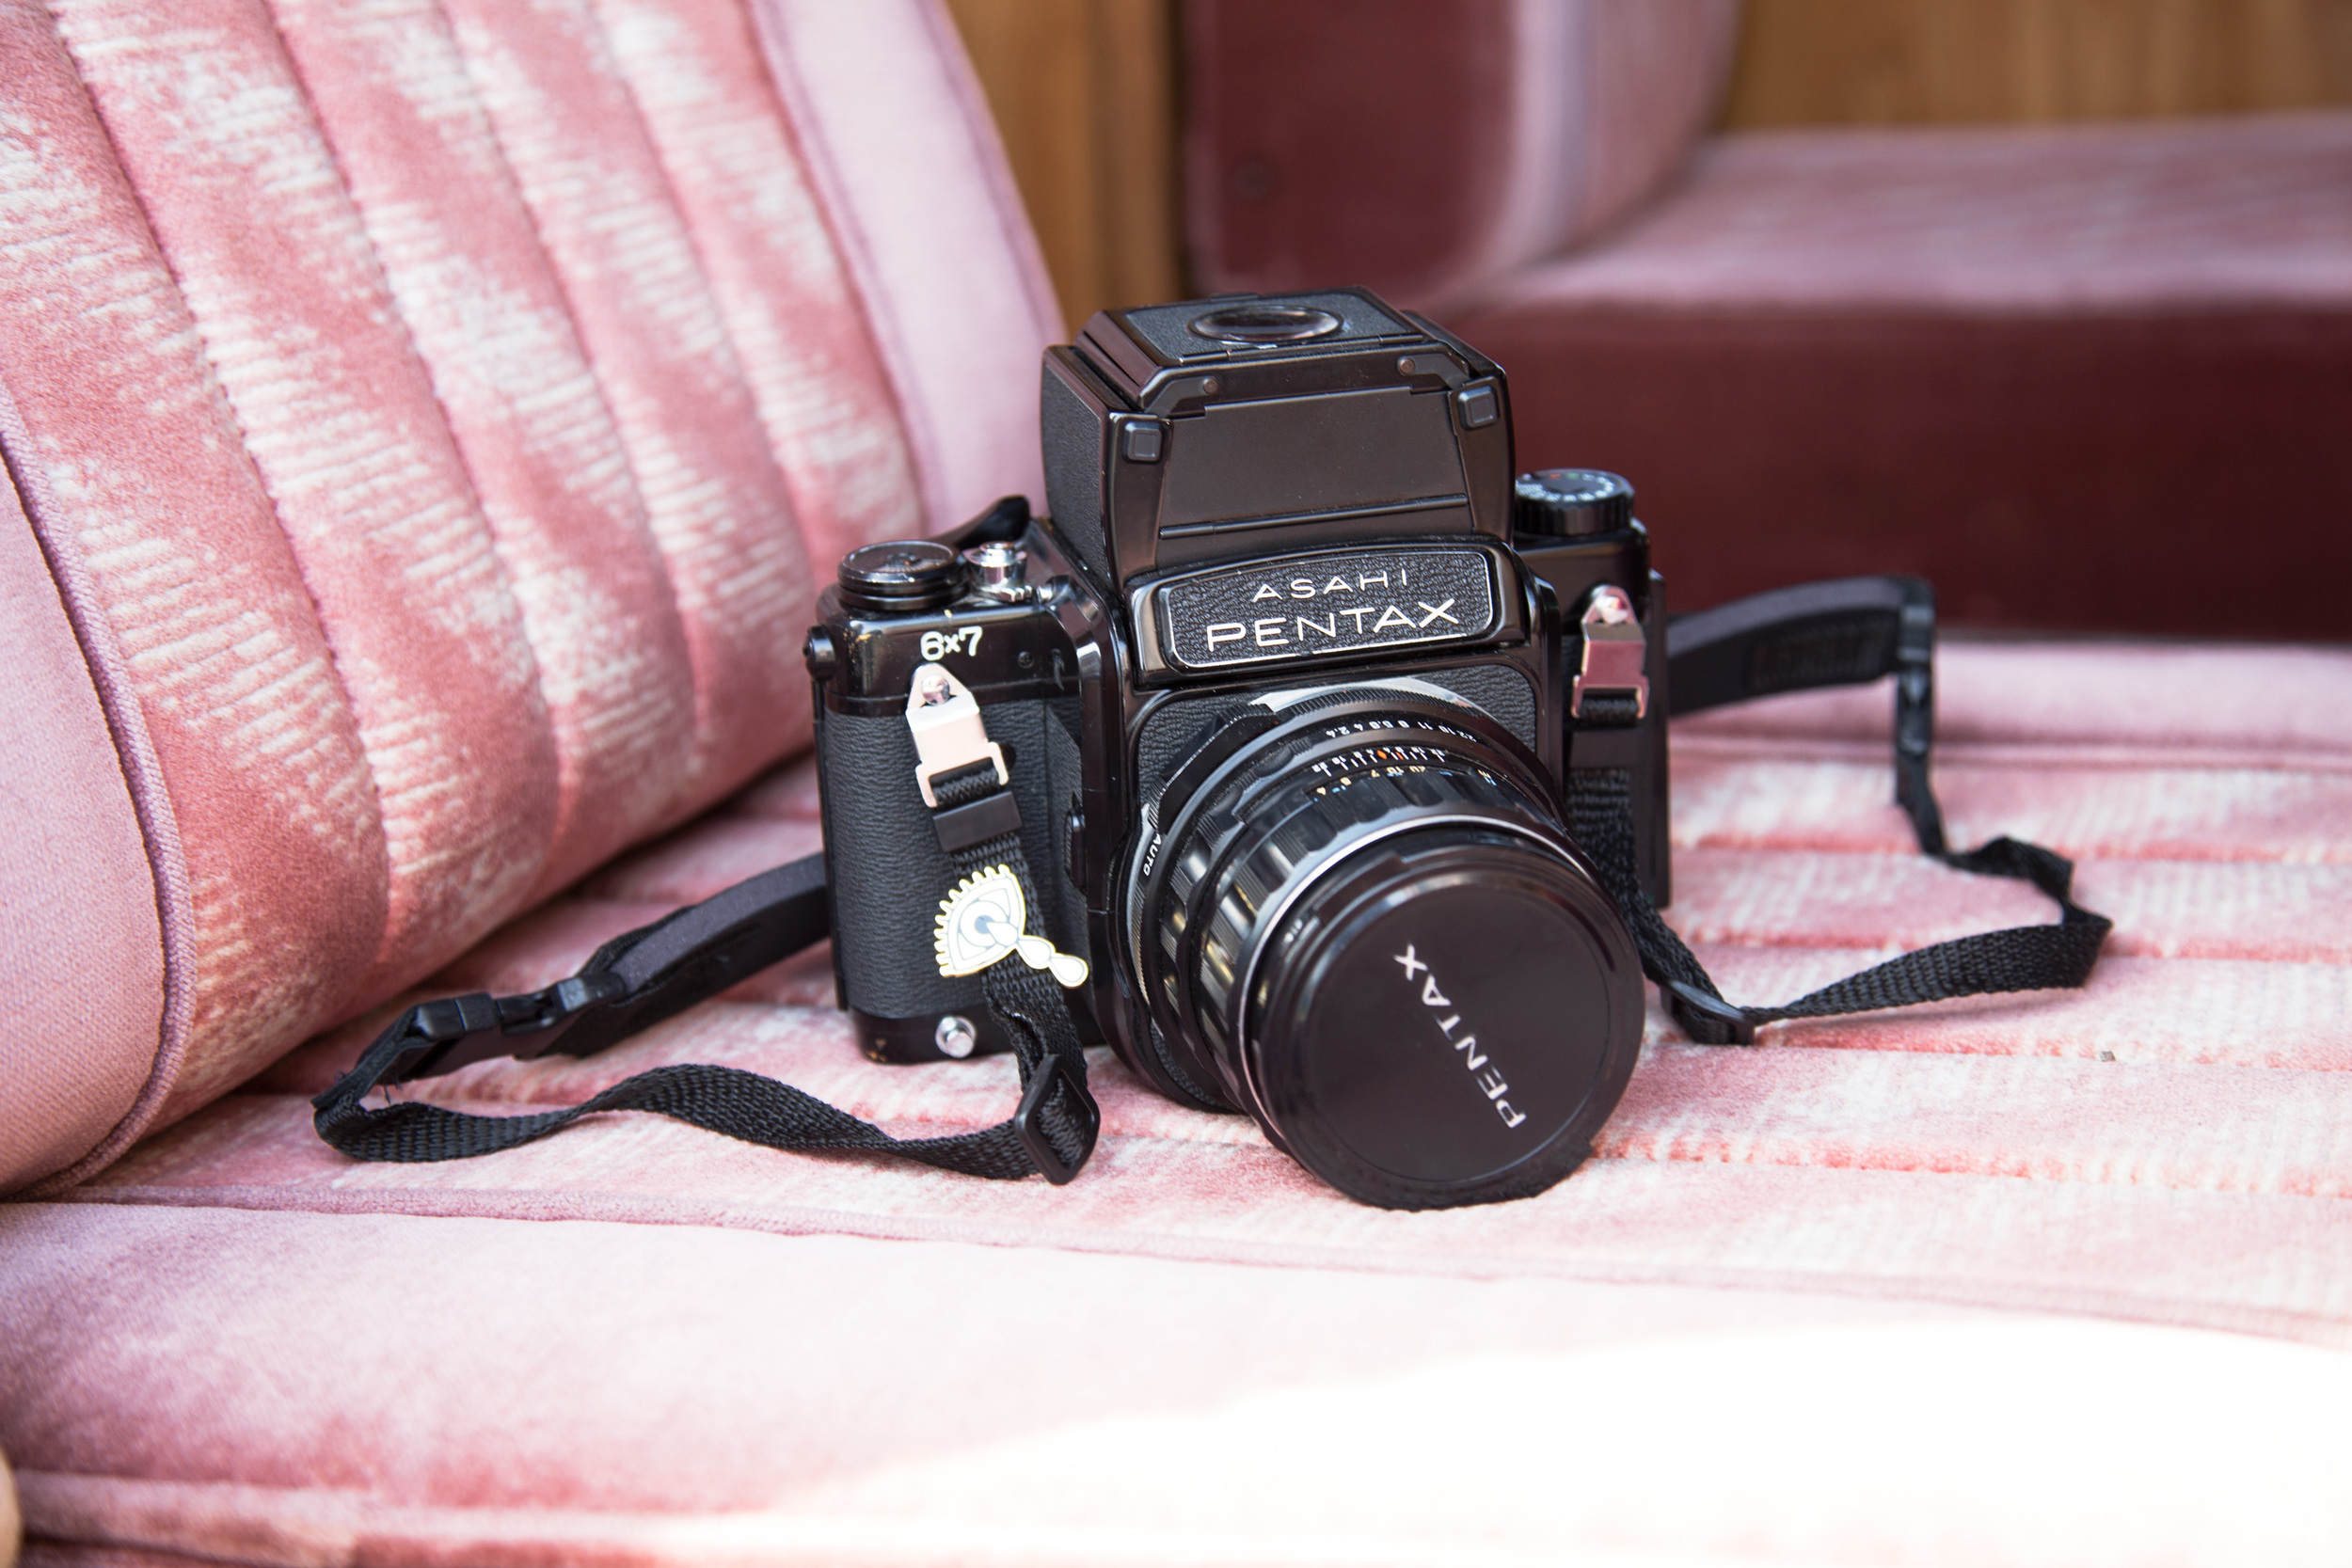 I will be photographing the trip entirely with my Canon 5d Mark III and Pentax 6x7. Anyone who has shot with a Pentax 6x7 will agree that there is nothing quite like hearing that shutter release. It's a beast!